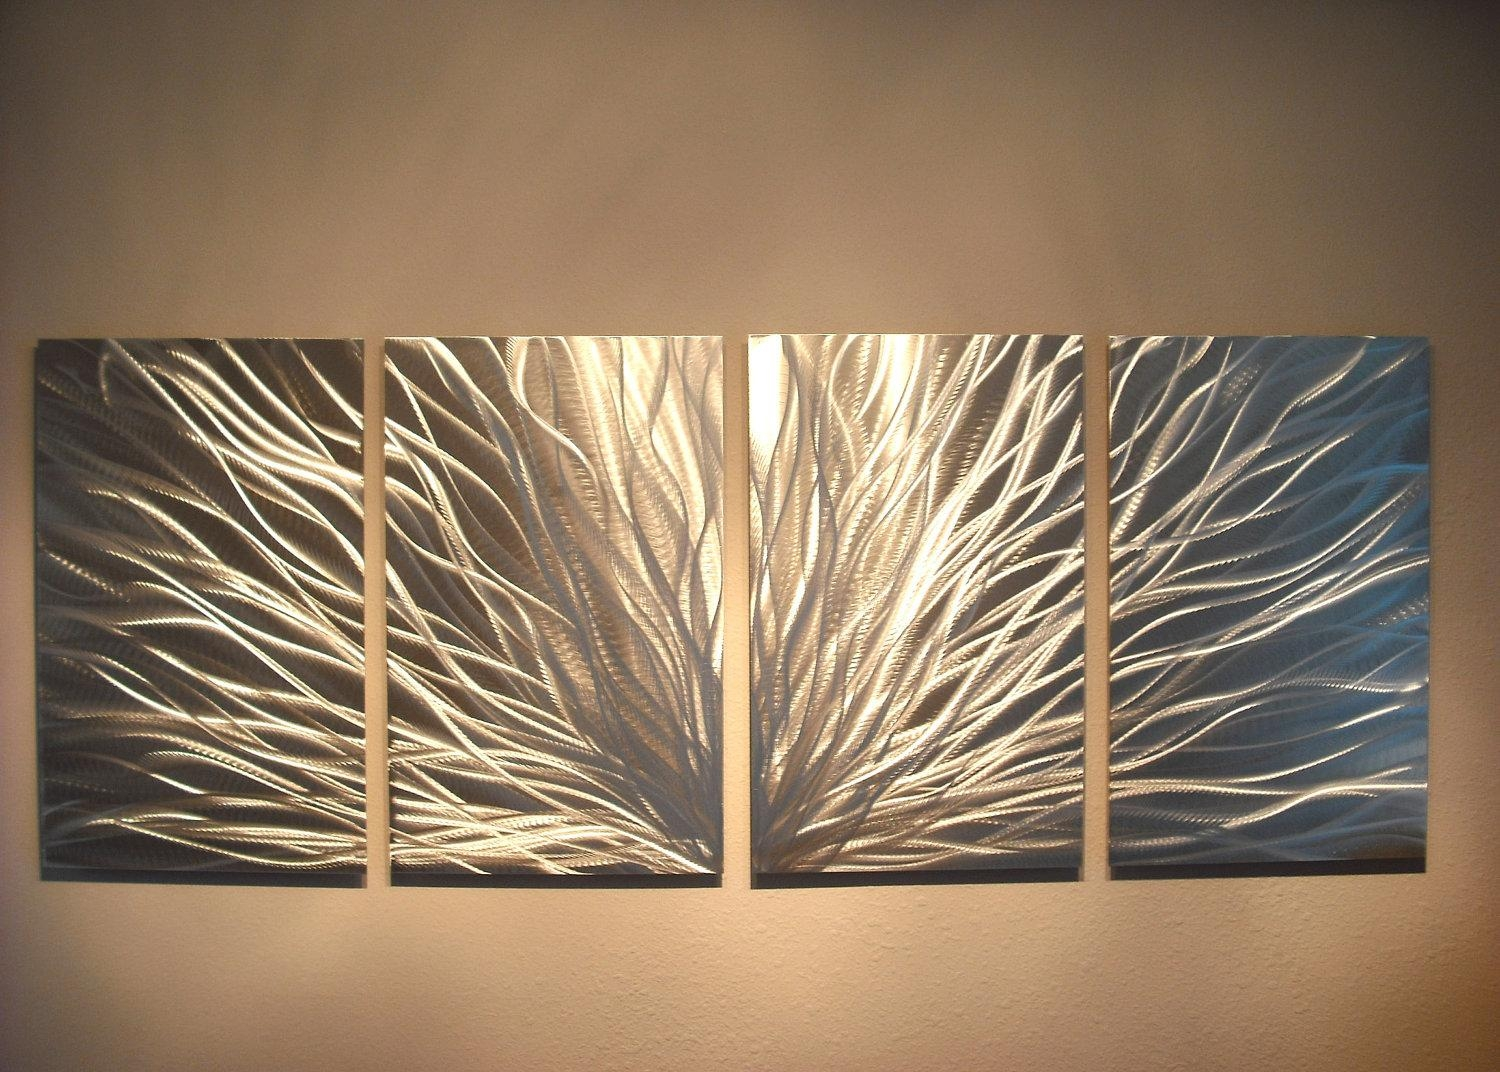 Low Budget Contemporary Wall Decor For Your Living Room | The In Uk Contemporary Wall Art (Image 12 of 20)